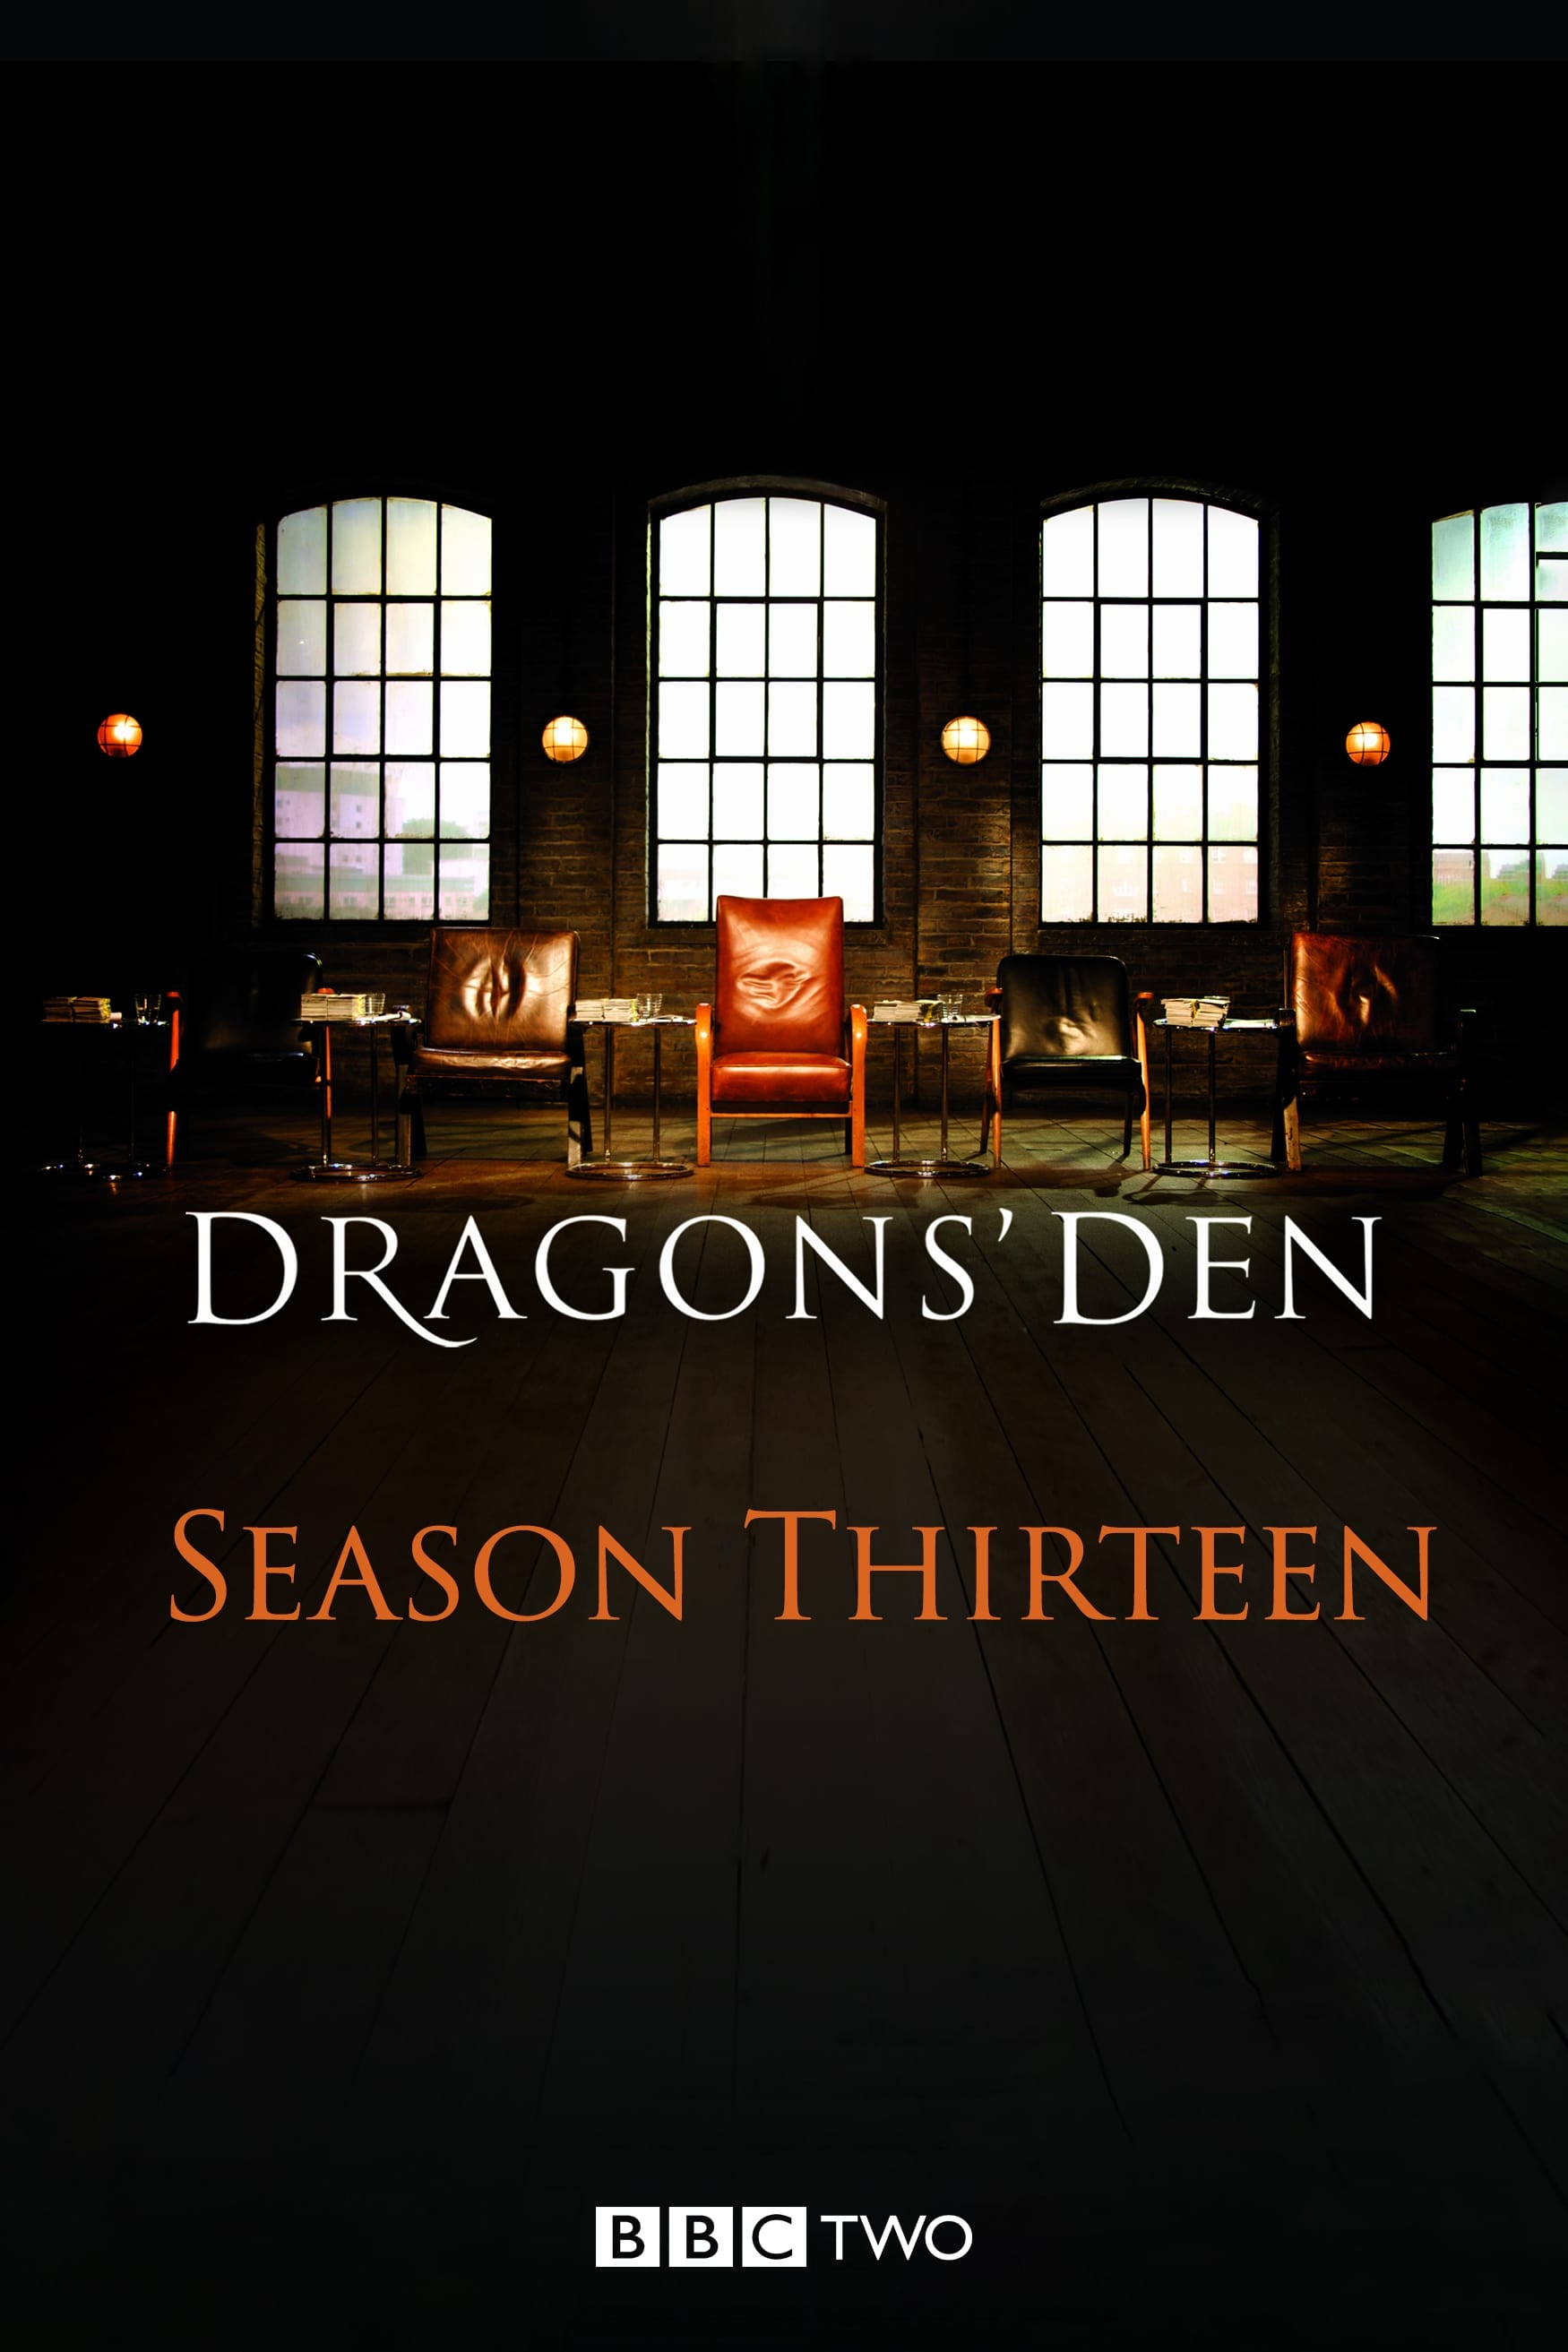 Dragons' Den Season 13